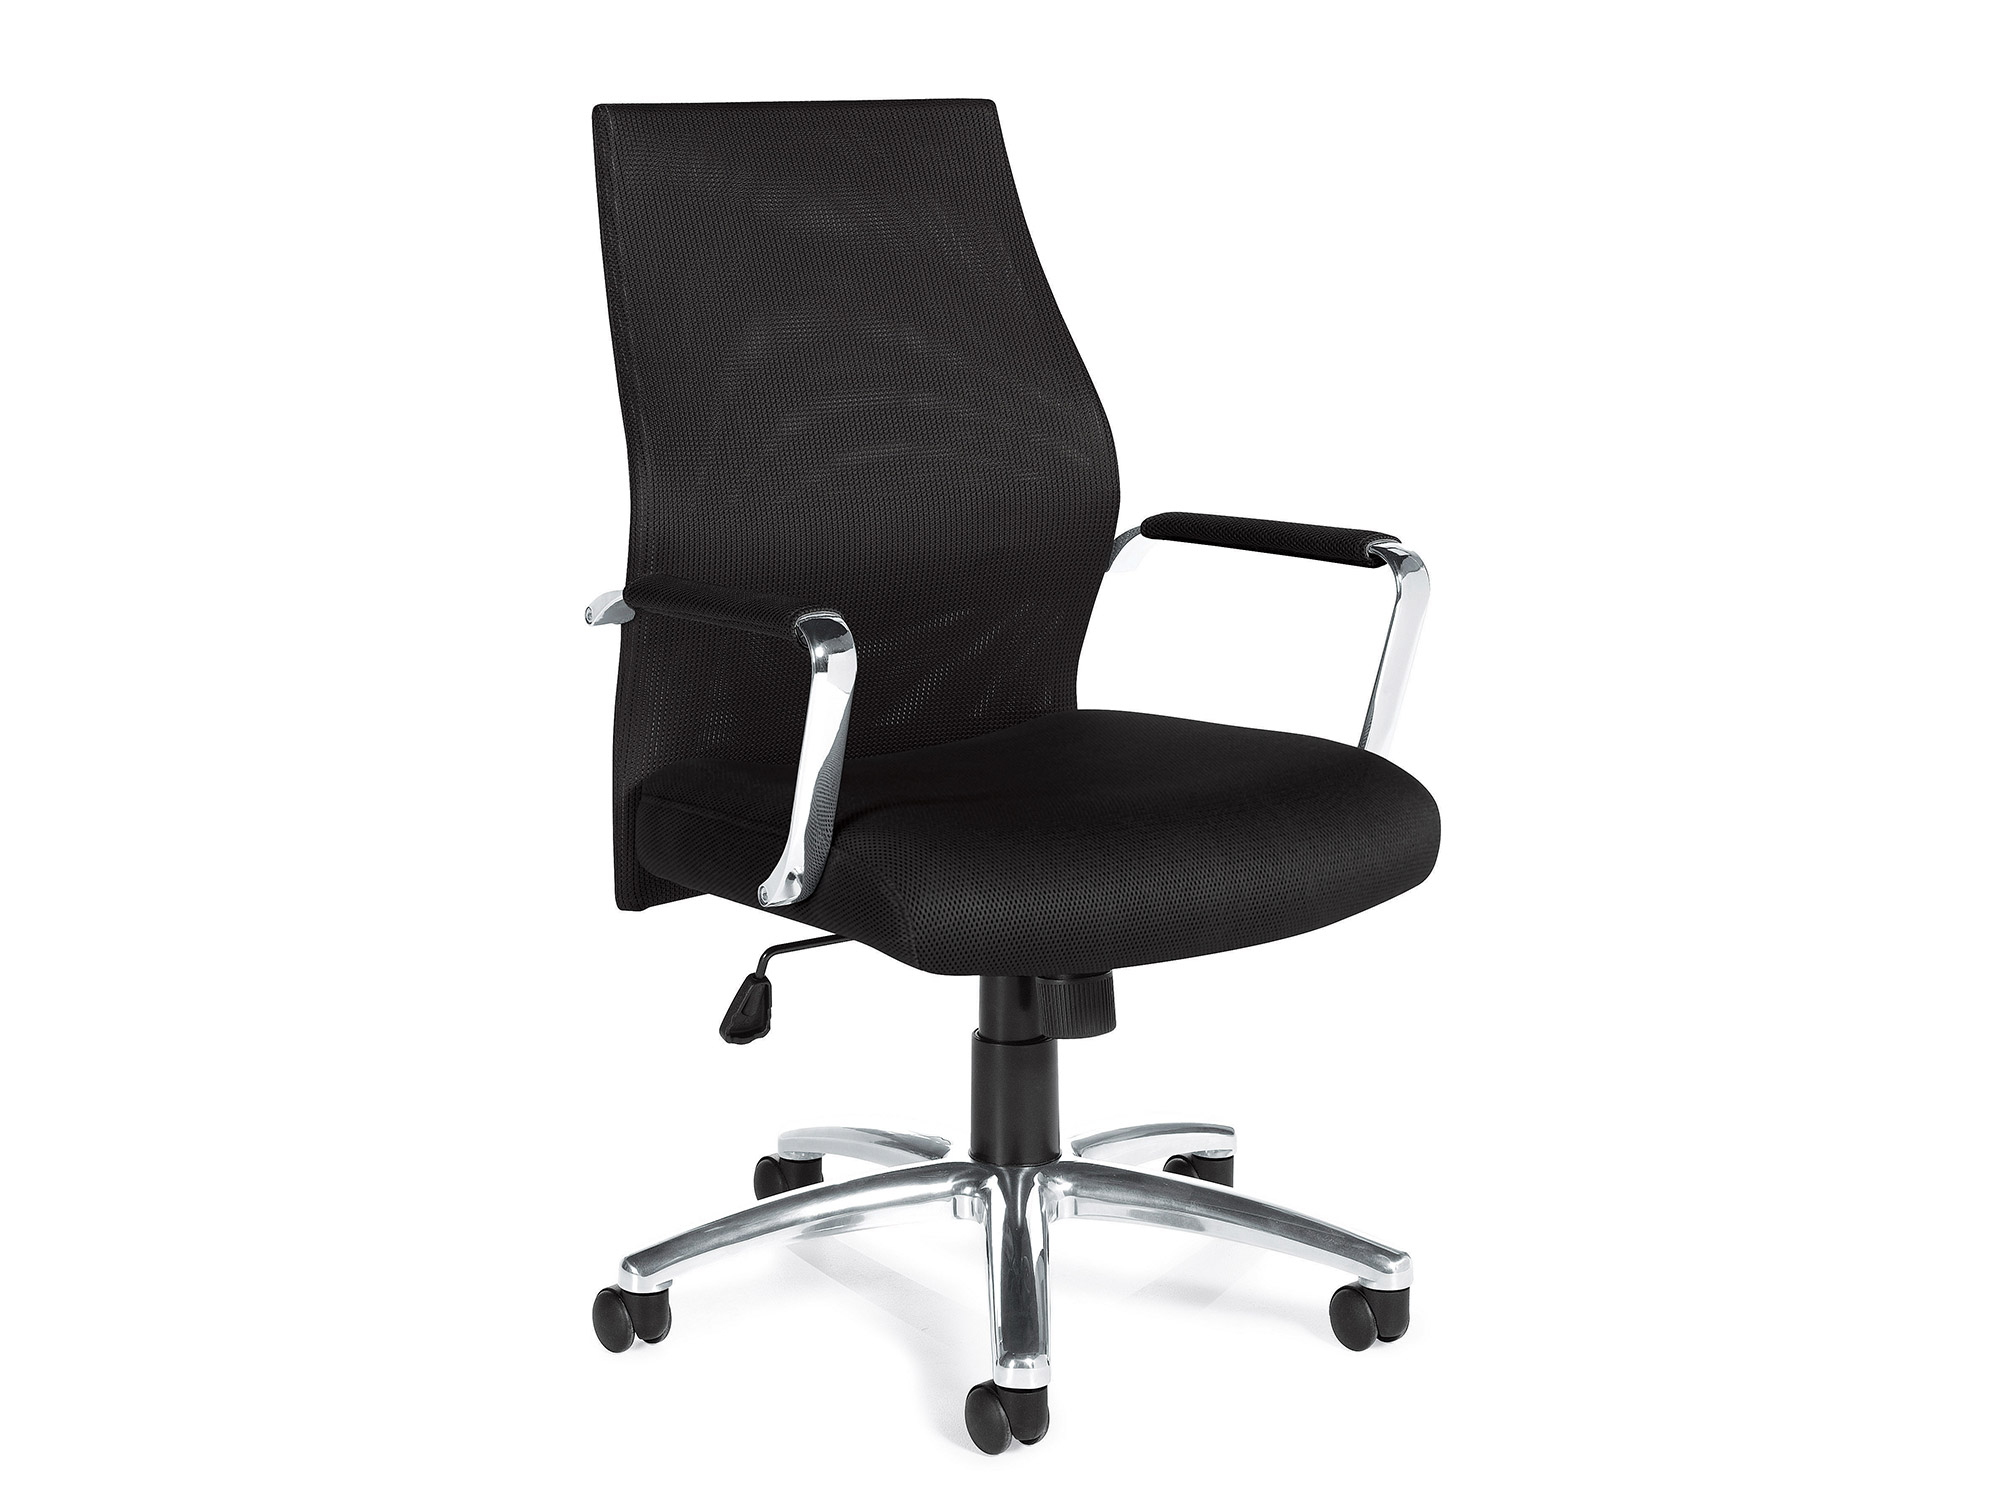 Chairs For Office #11657B